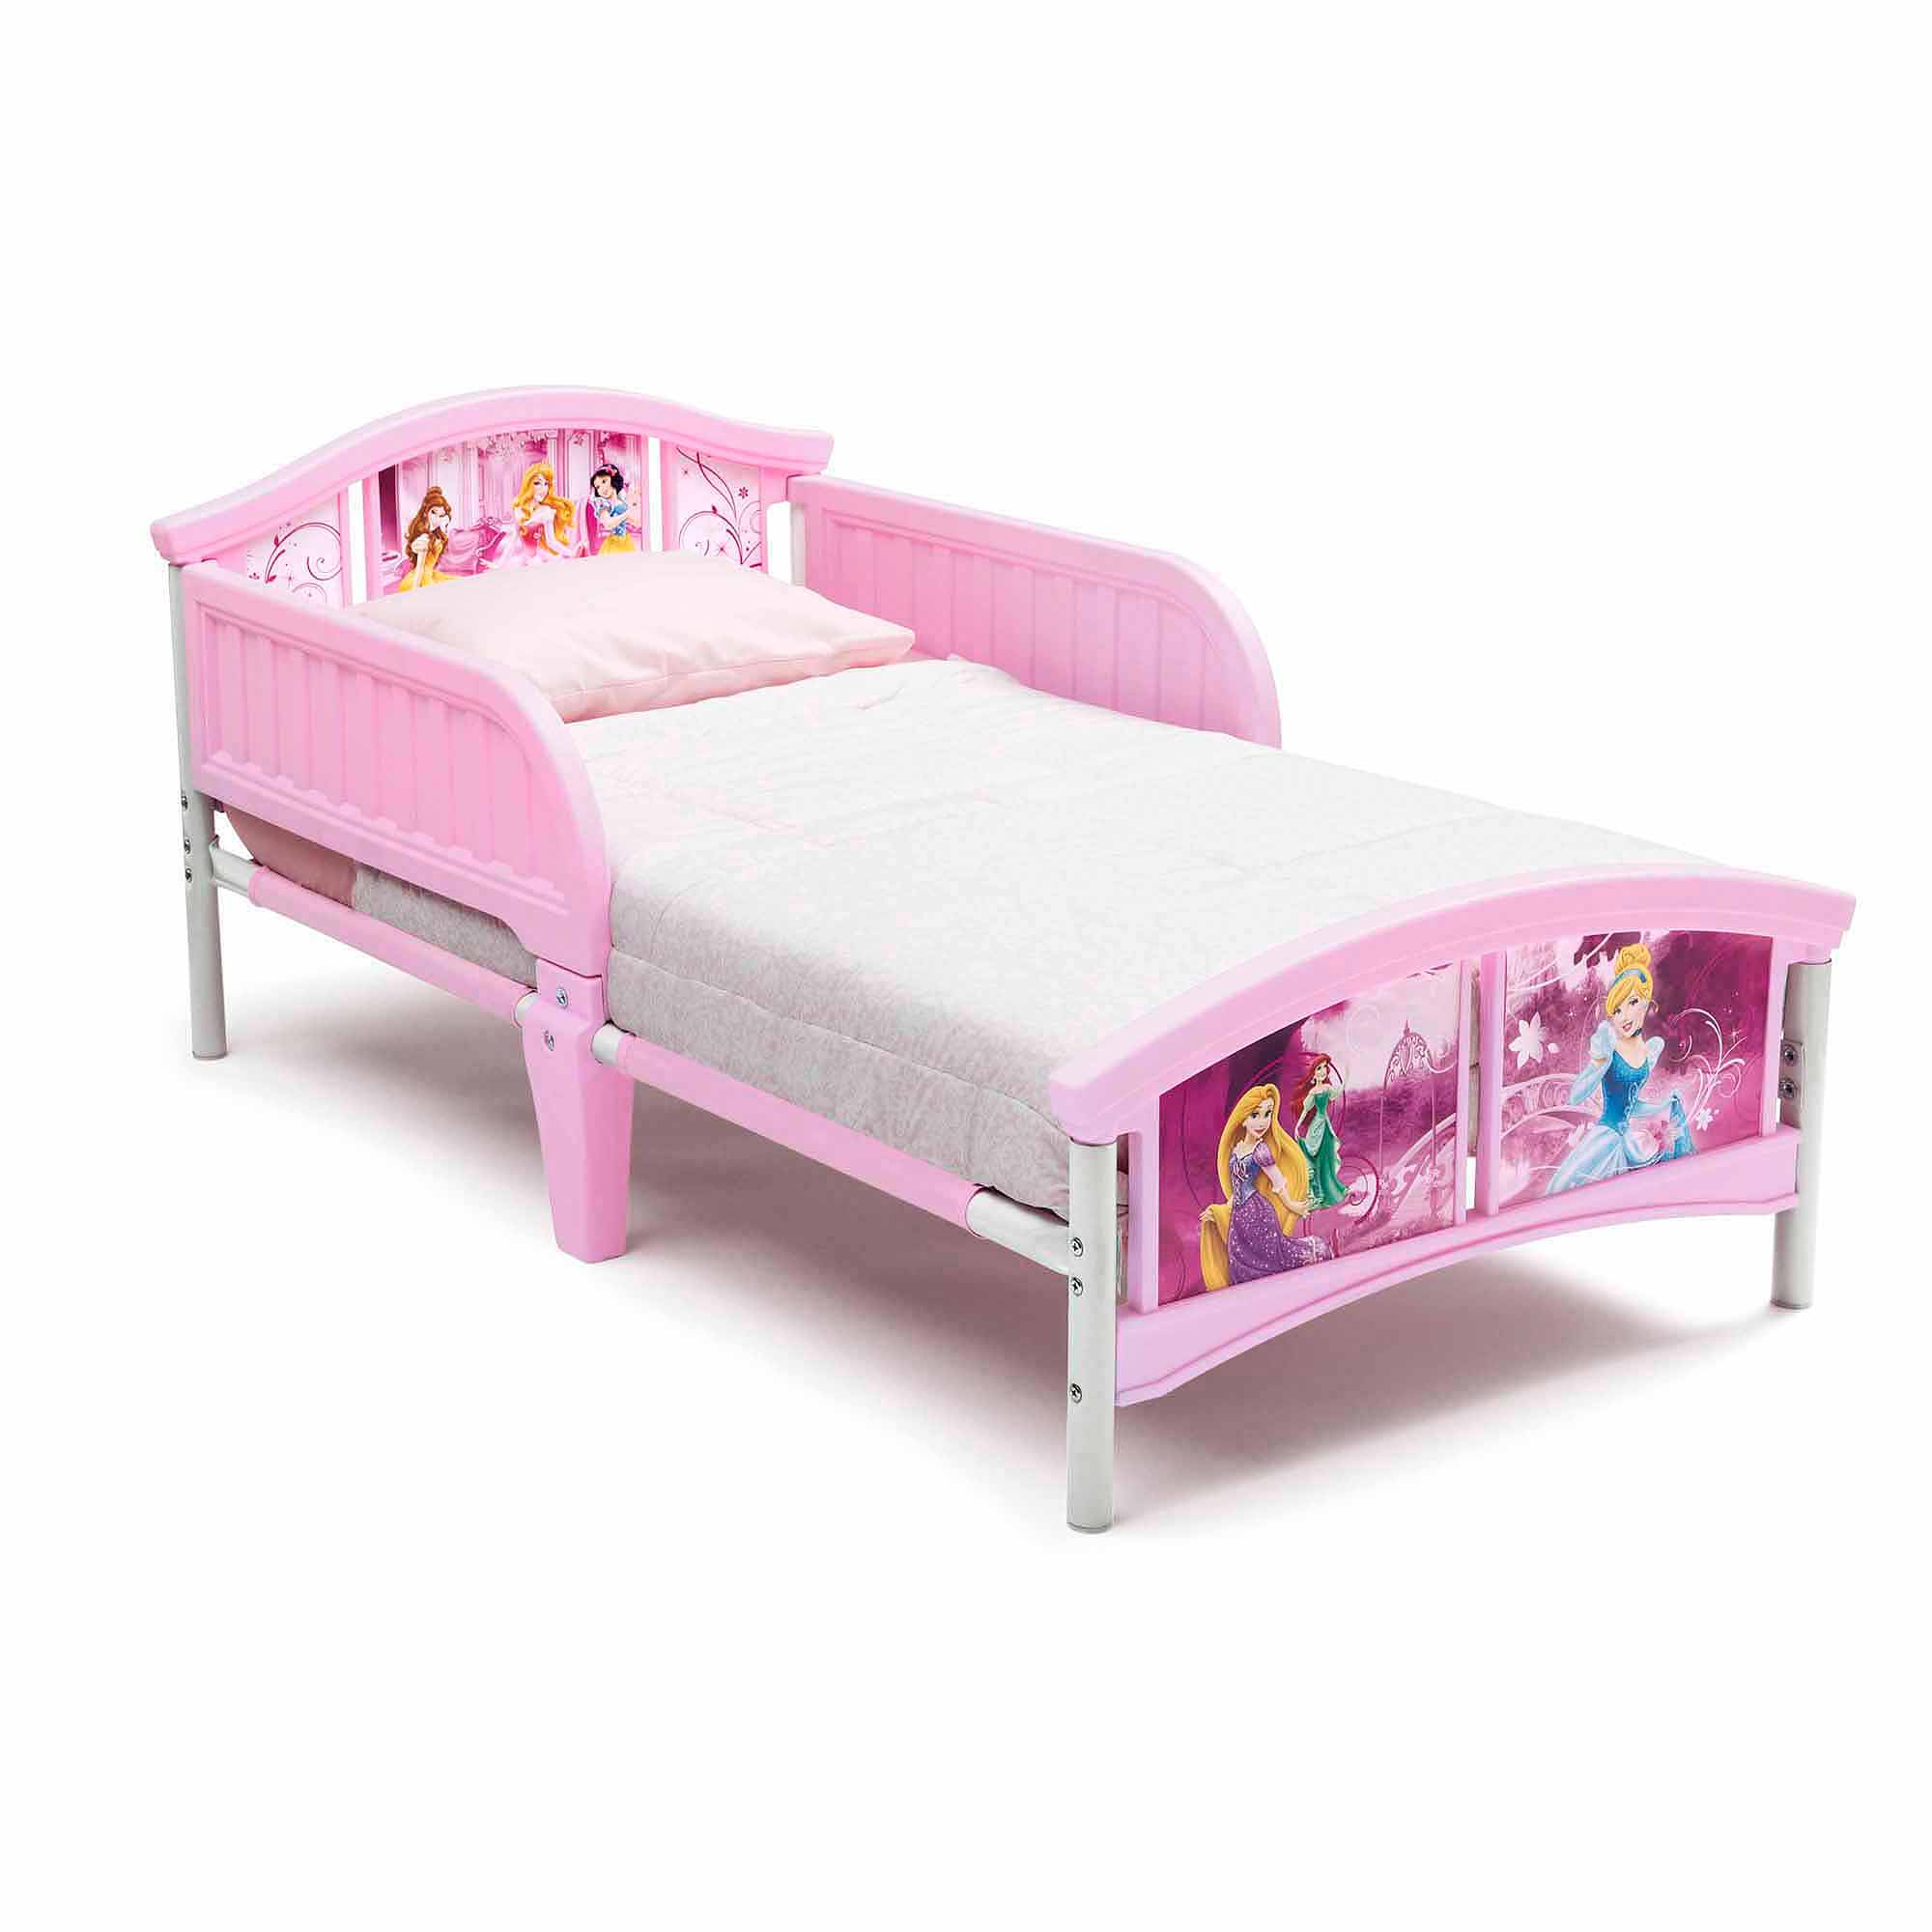 Girl toddler bed furniture - Girl Toddler Bed Furniture